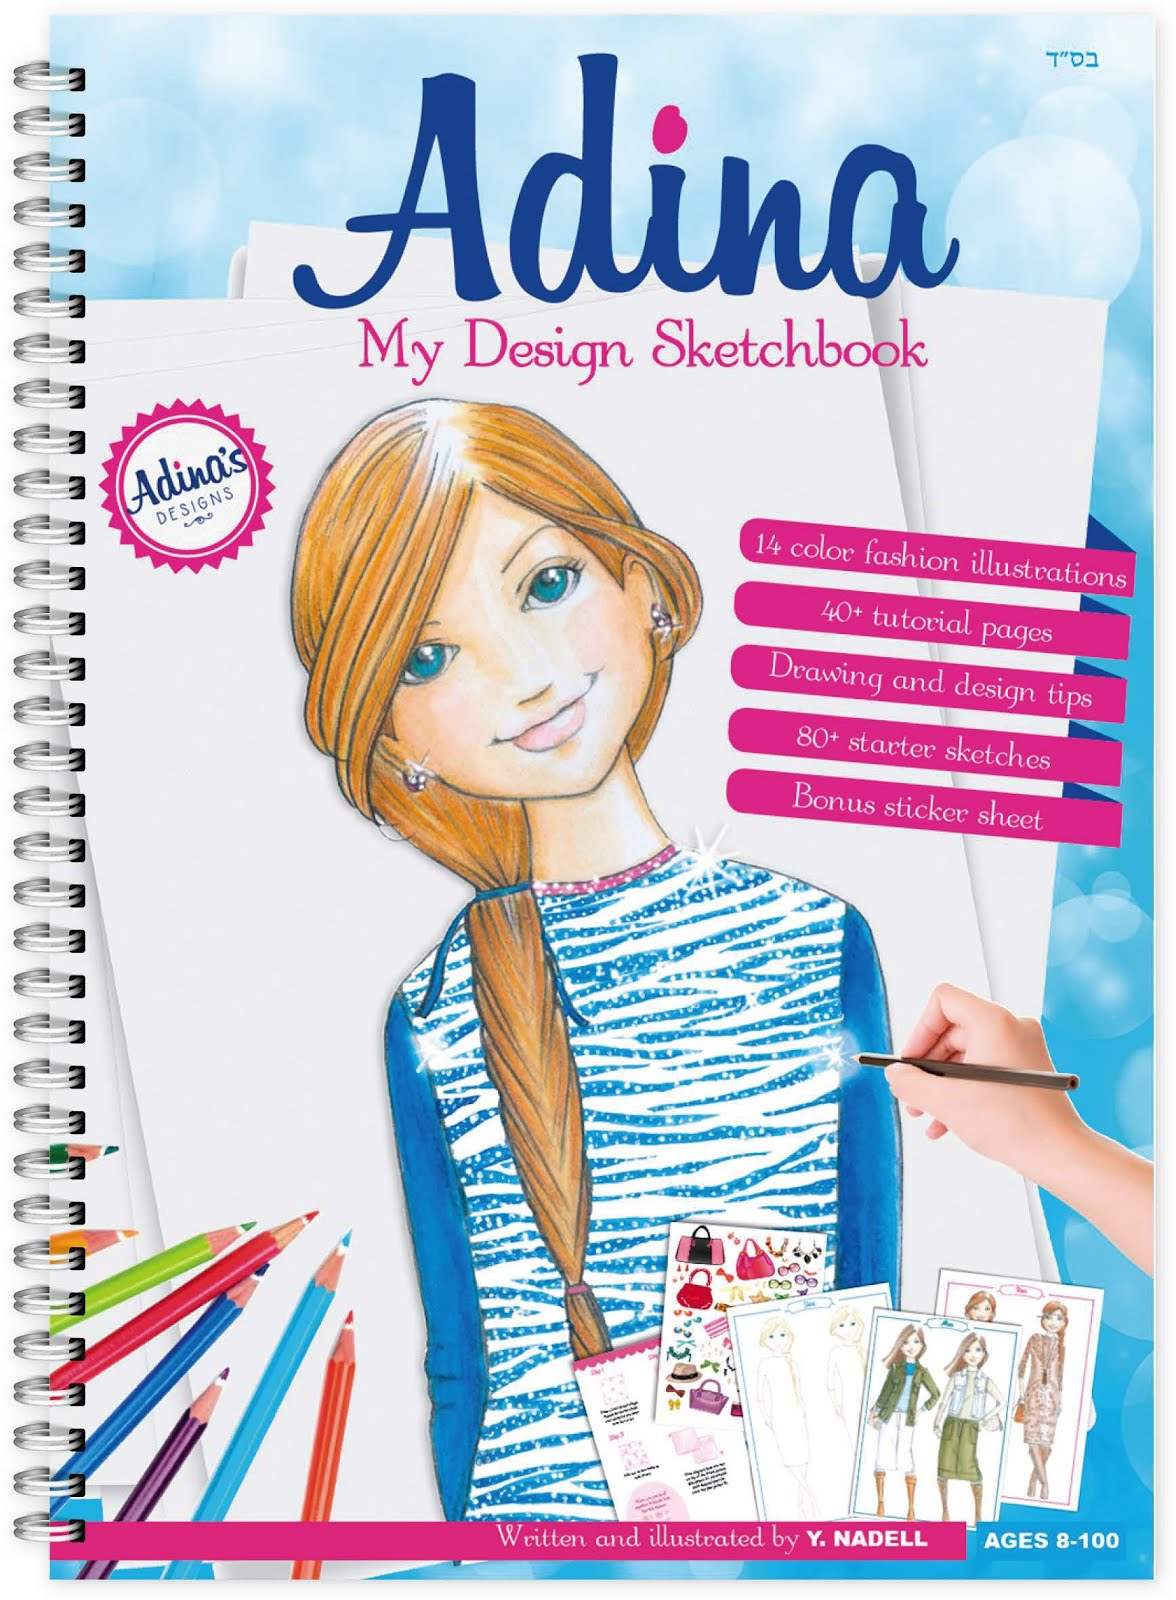 Adina: My Design Sketchbook GIVEAWAY